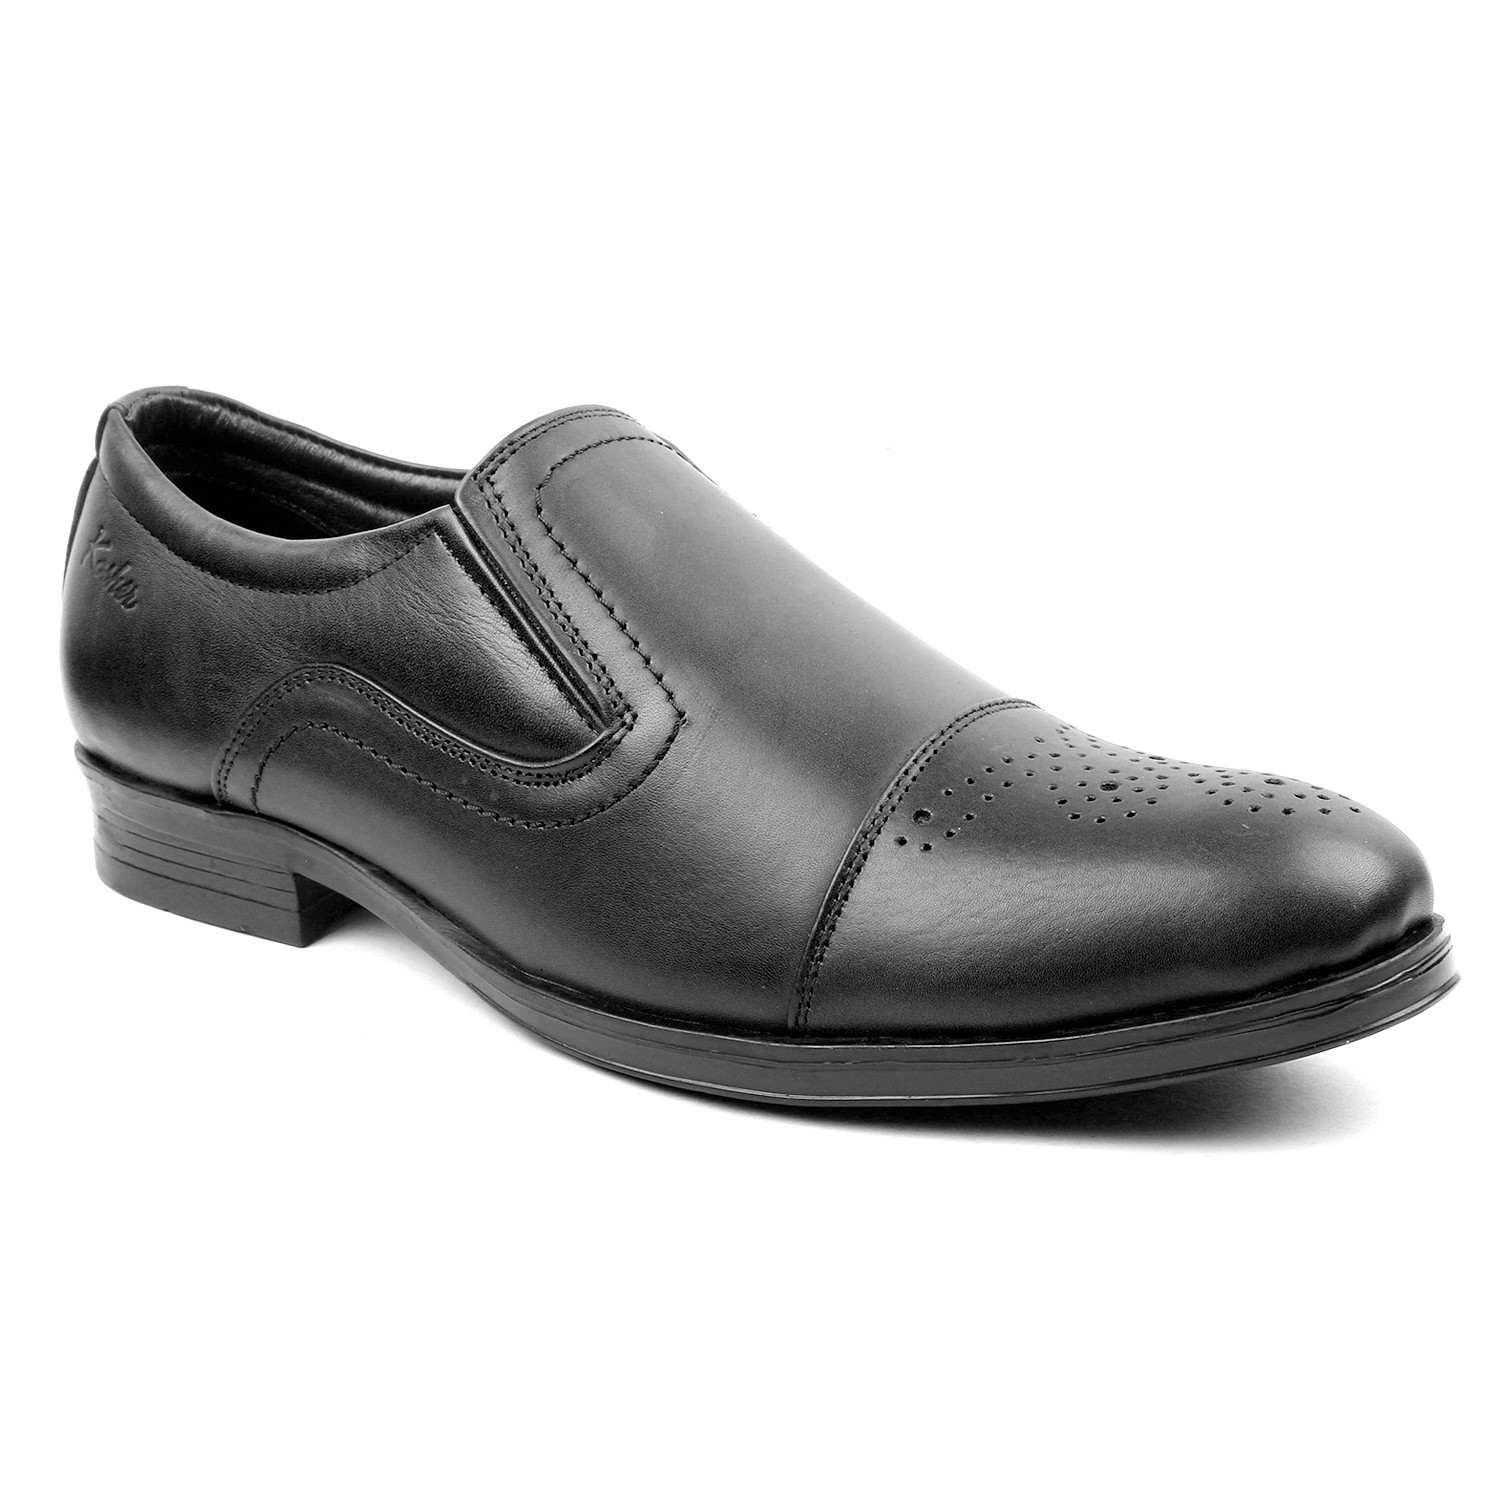 Kosher Leather Black Shoes Men